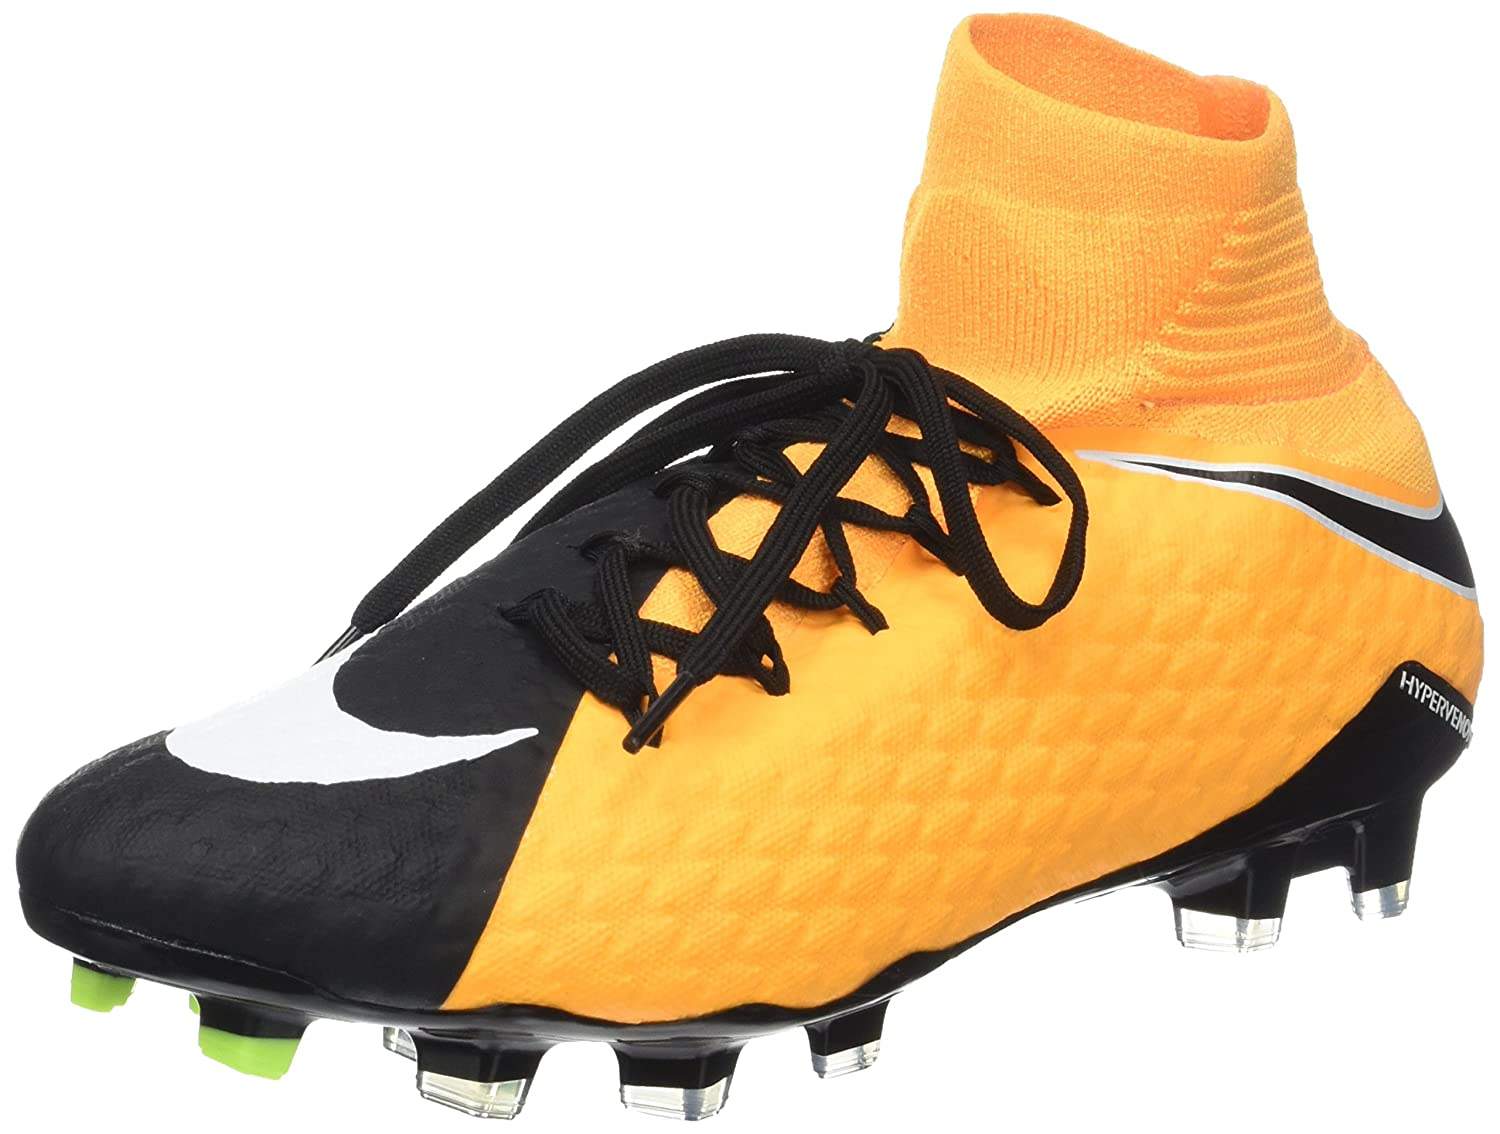 low priced 15a8c 389c8 Nike Hypervenom Phatal III Df FG Mens Football Boots 852554 Soccer Cleats